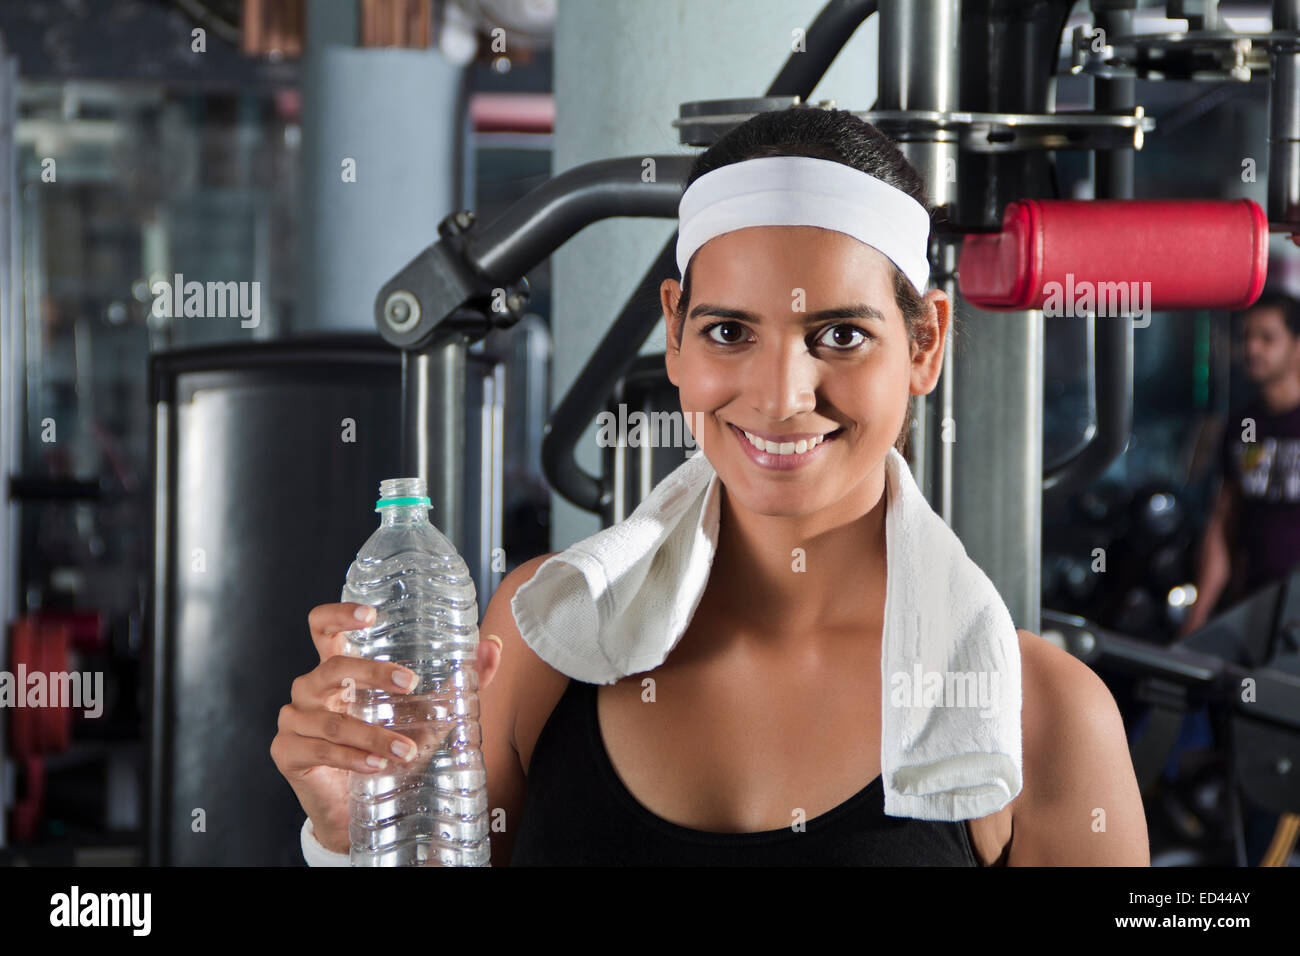 1 indian sports lady gym drinking water stock photo royalty free 1 indian sports lady gym drinking water sciox Choice Image